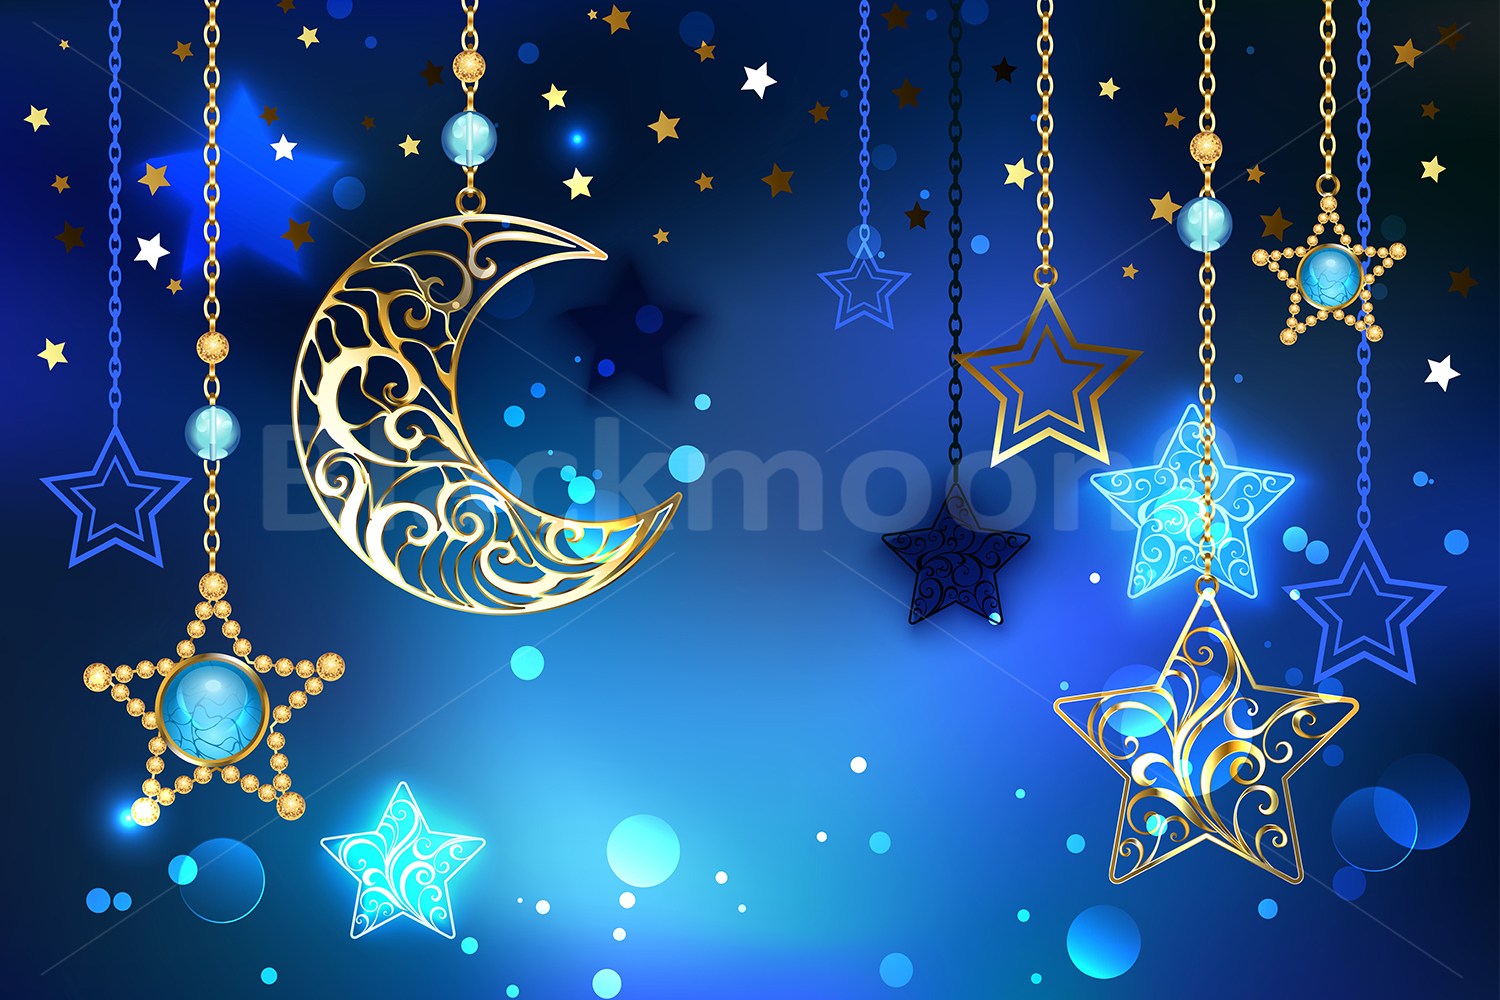 Gold Crescent on Blue Background example image 1